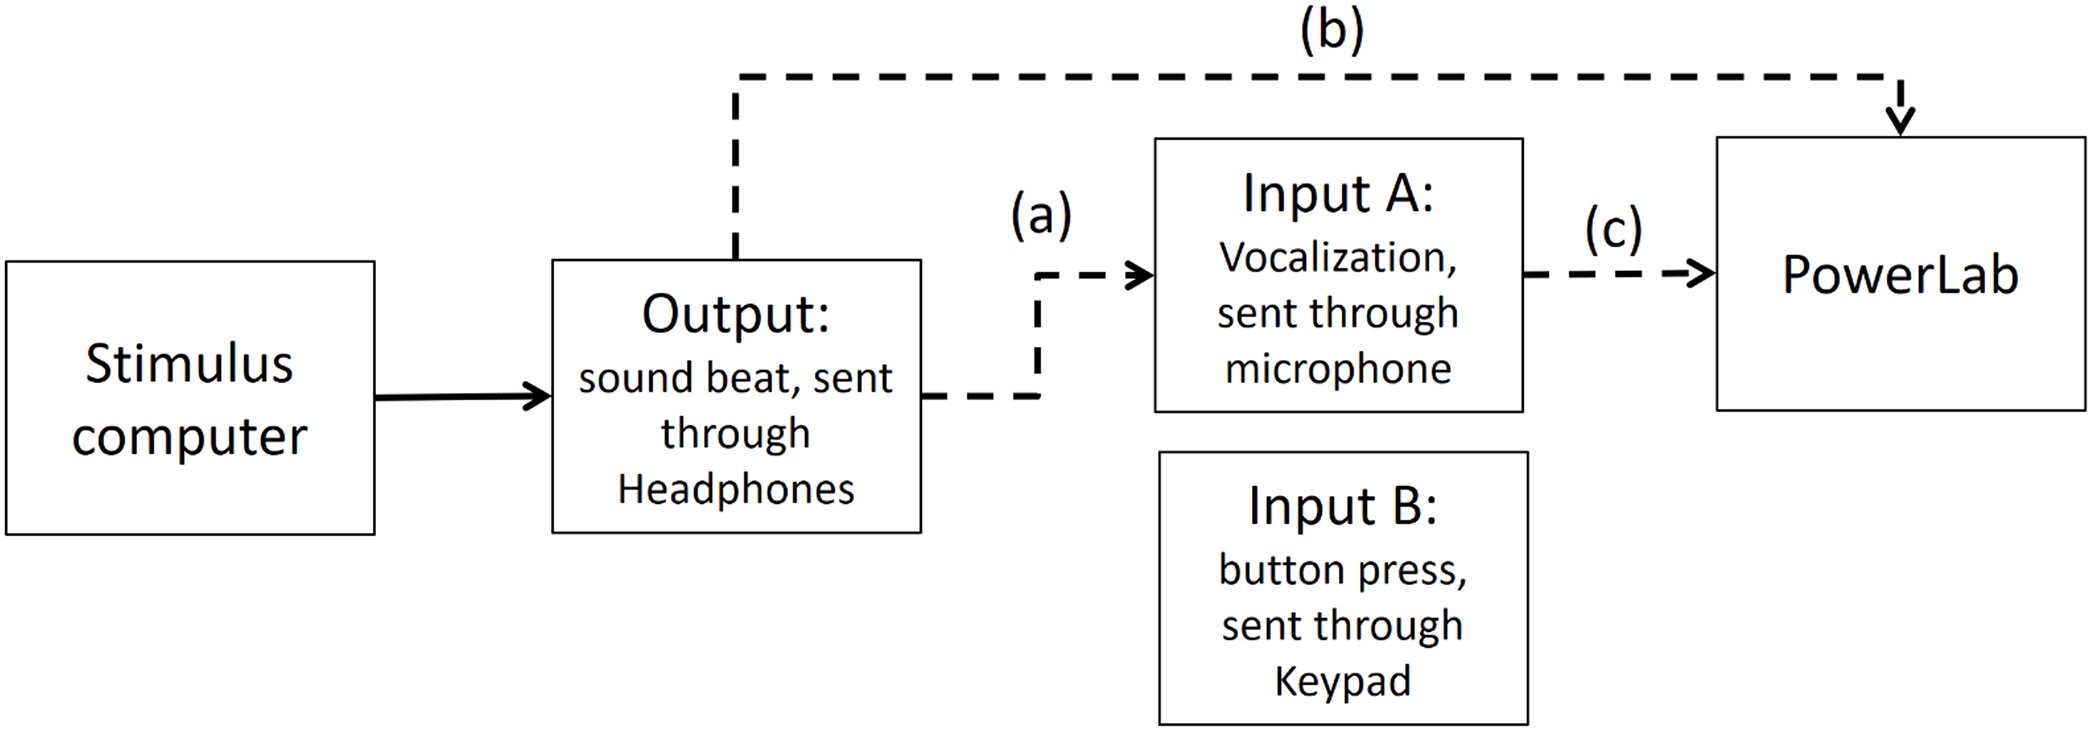 Stop Signals Delay Synchrony More For Finger Tapping Than Acts As An Output Of The Circuit Click To View Fullsize Picture Download Full Size Image